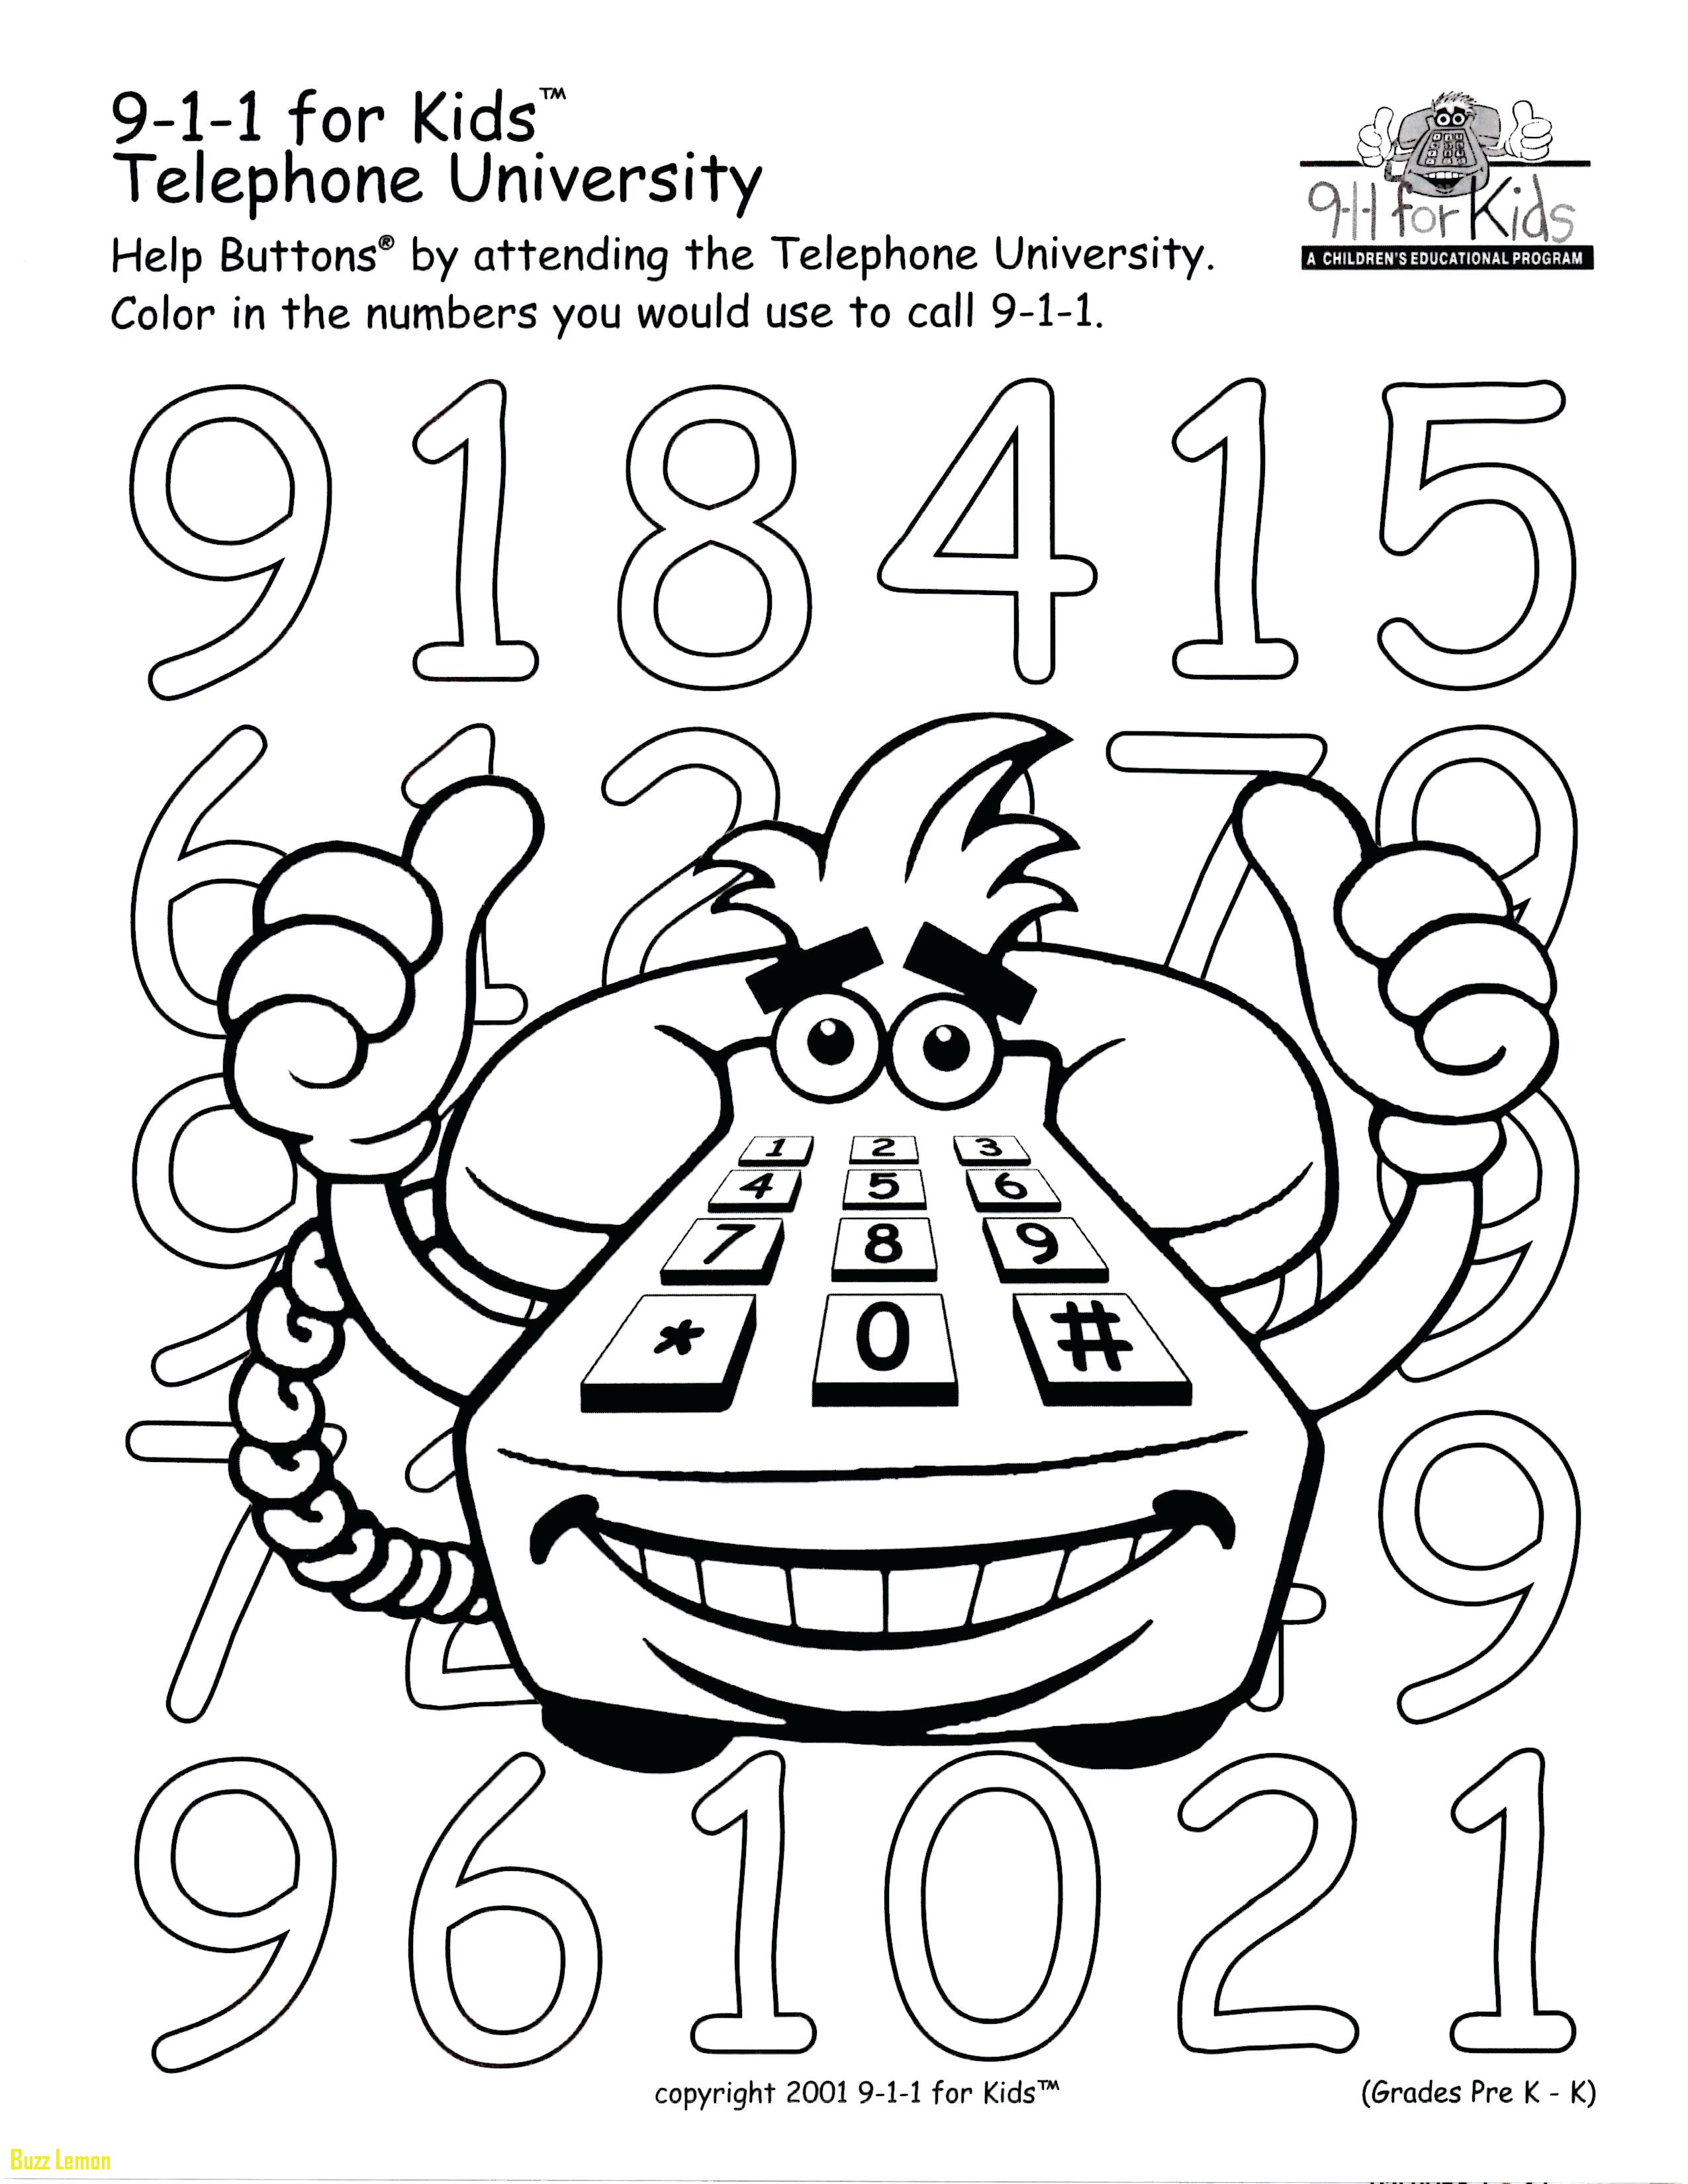 Porsche 911 Coloring Pages At Getcolorings